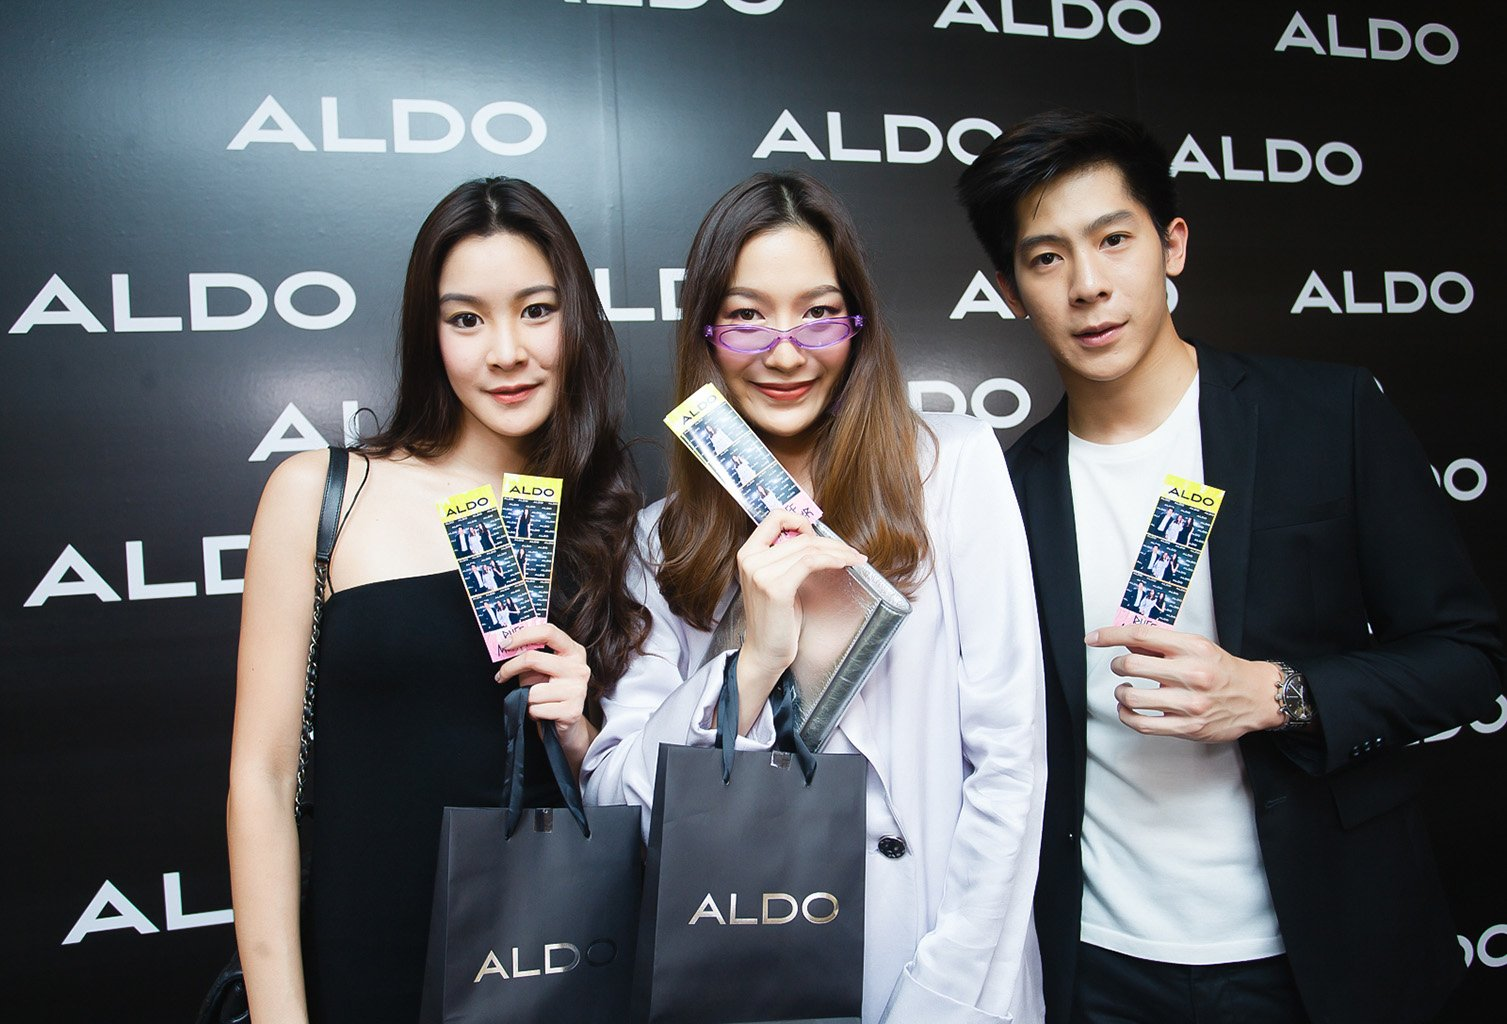 aldo flagship shop bangkok shoes fashion pattayatoday pattaya news